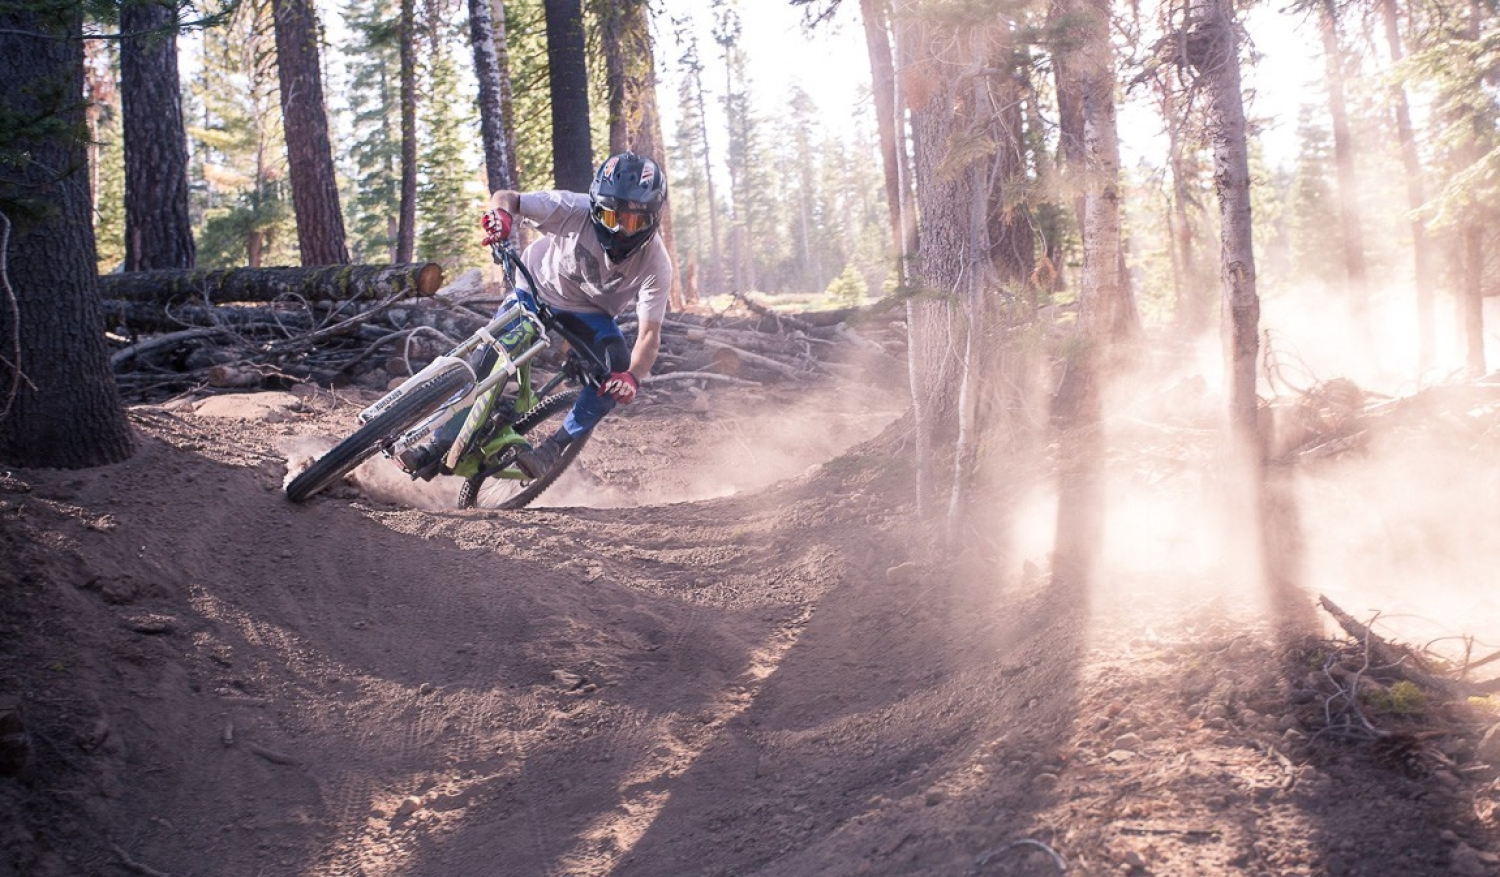 Tanner Stephens at Northstar Bike Park